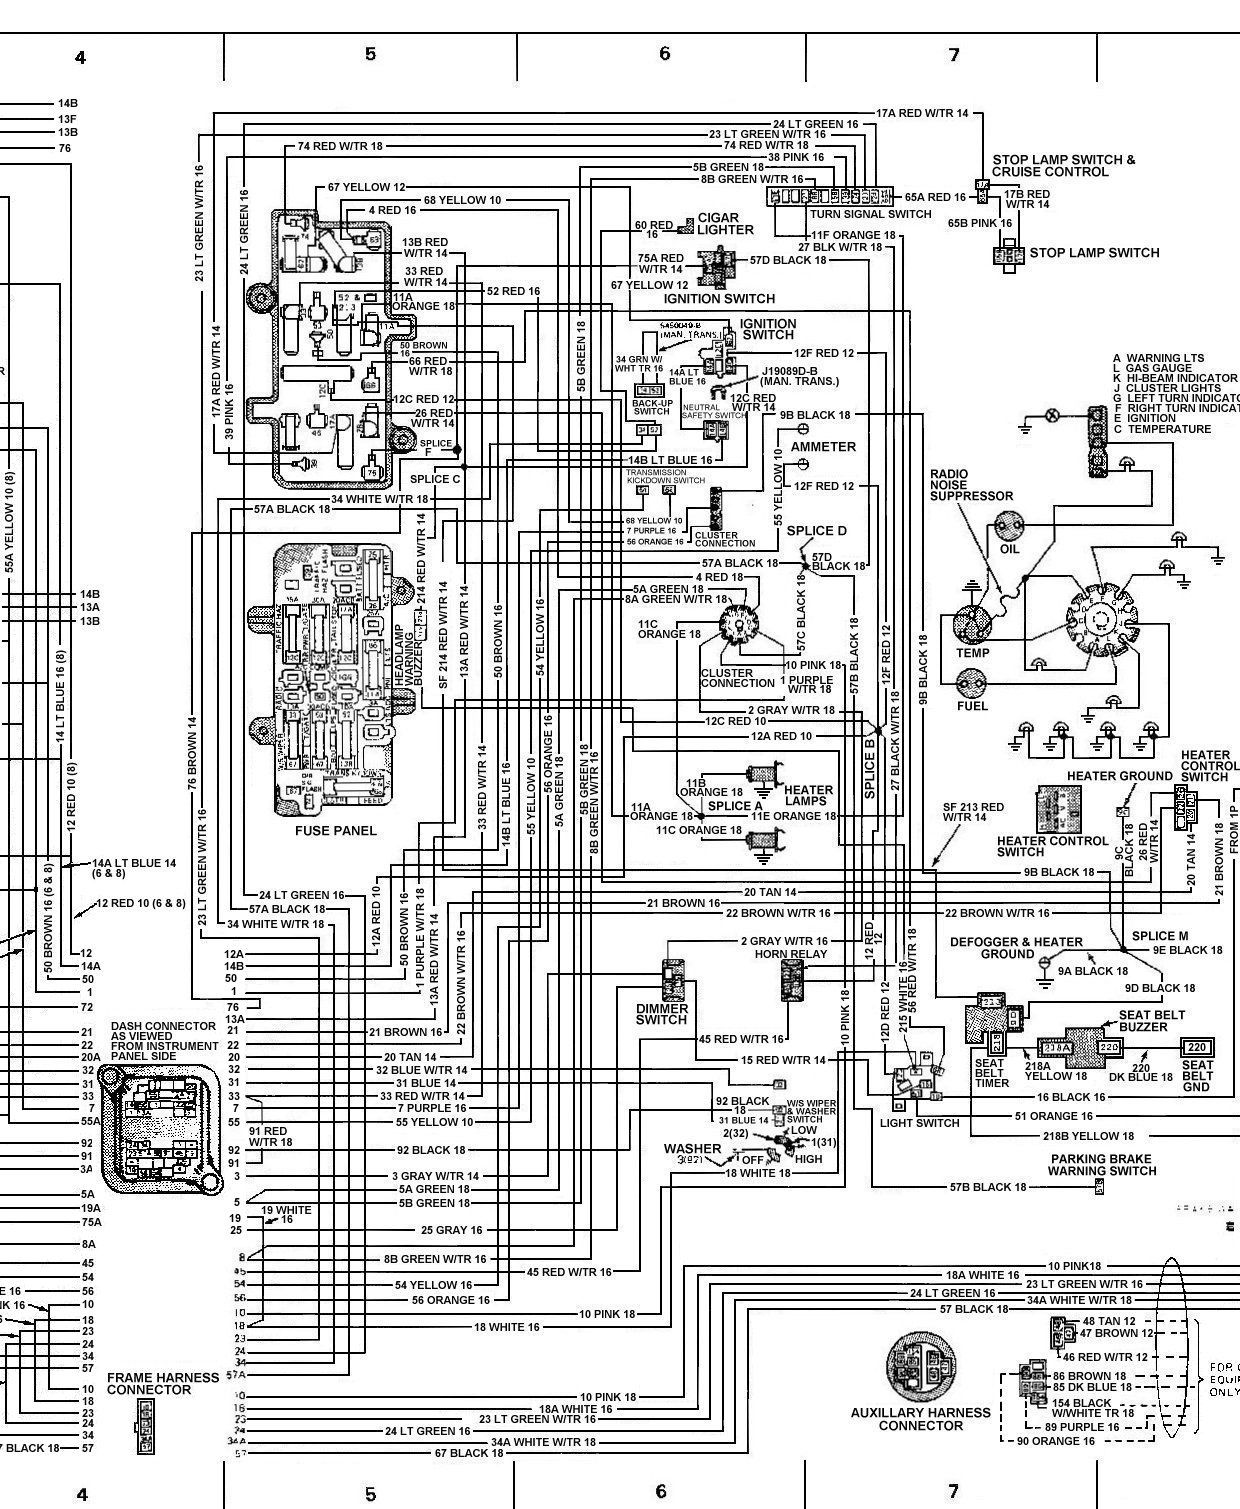 Nisson Nv2500 Wiring Diagram 28 Images Nissan Qg15de 9347b12e8bd7aa2c8cd4f5524c30391f 2016 Chrysler Drifter Reload Thread 07 Kia Sportage Nv 2500 At